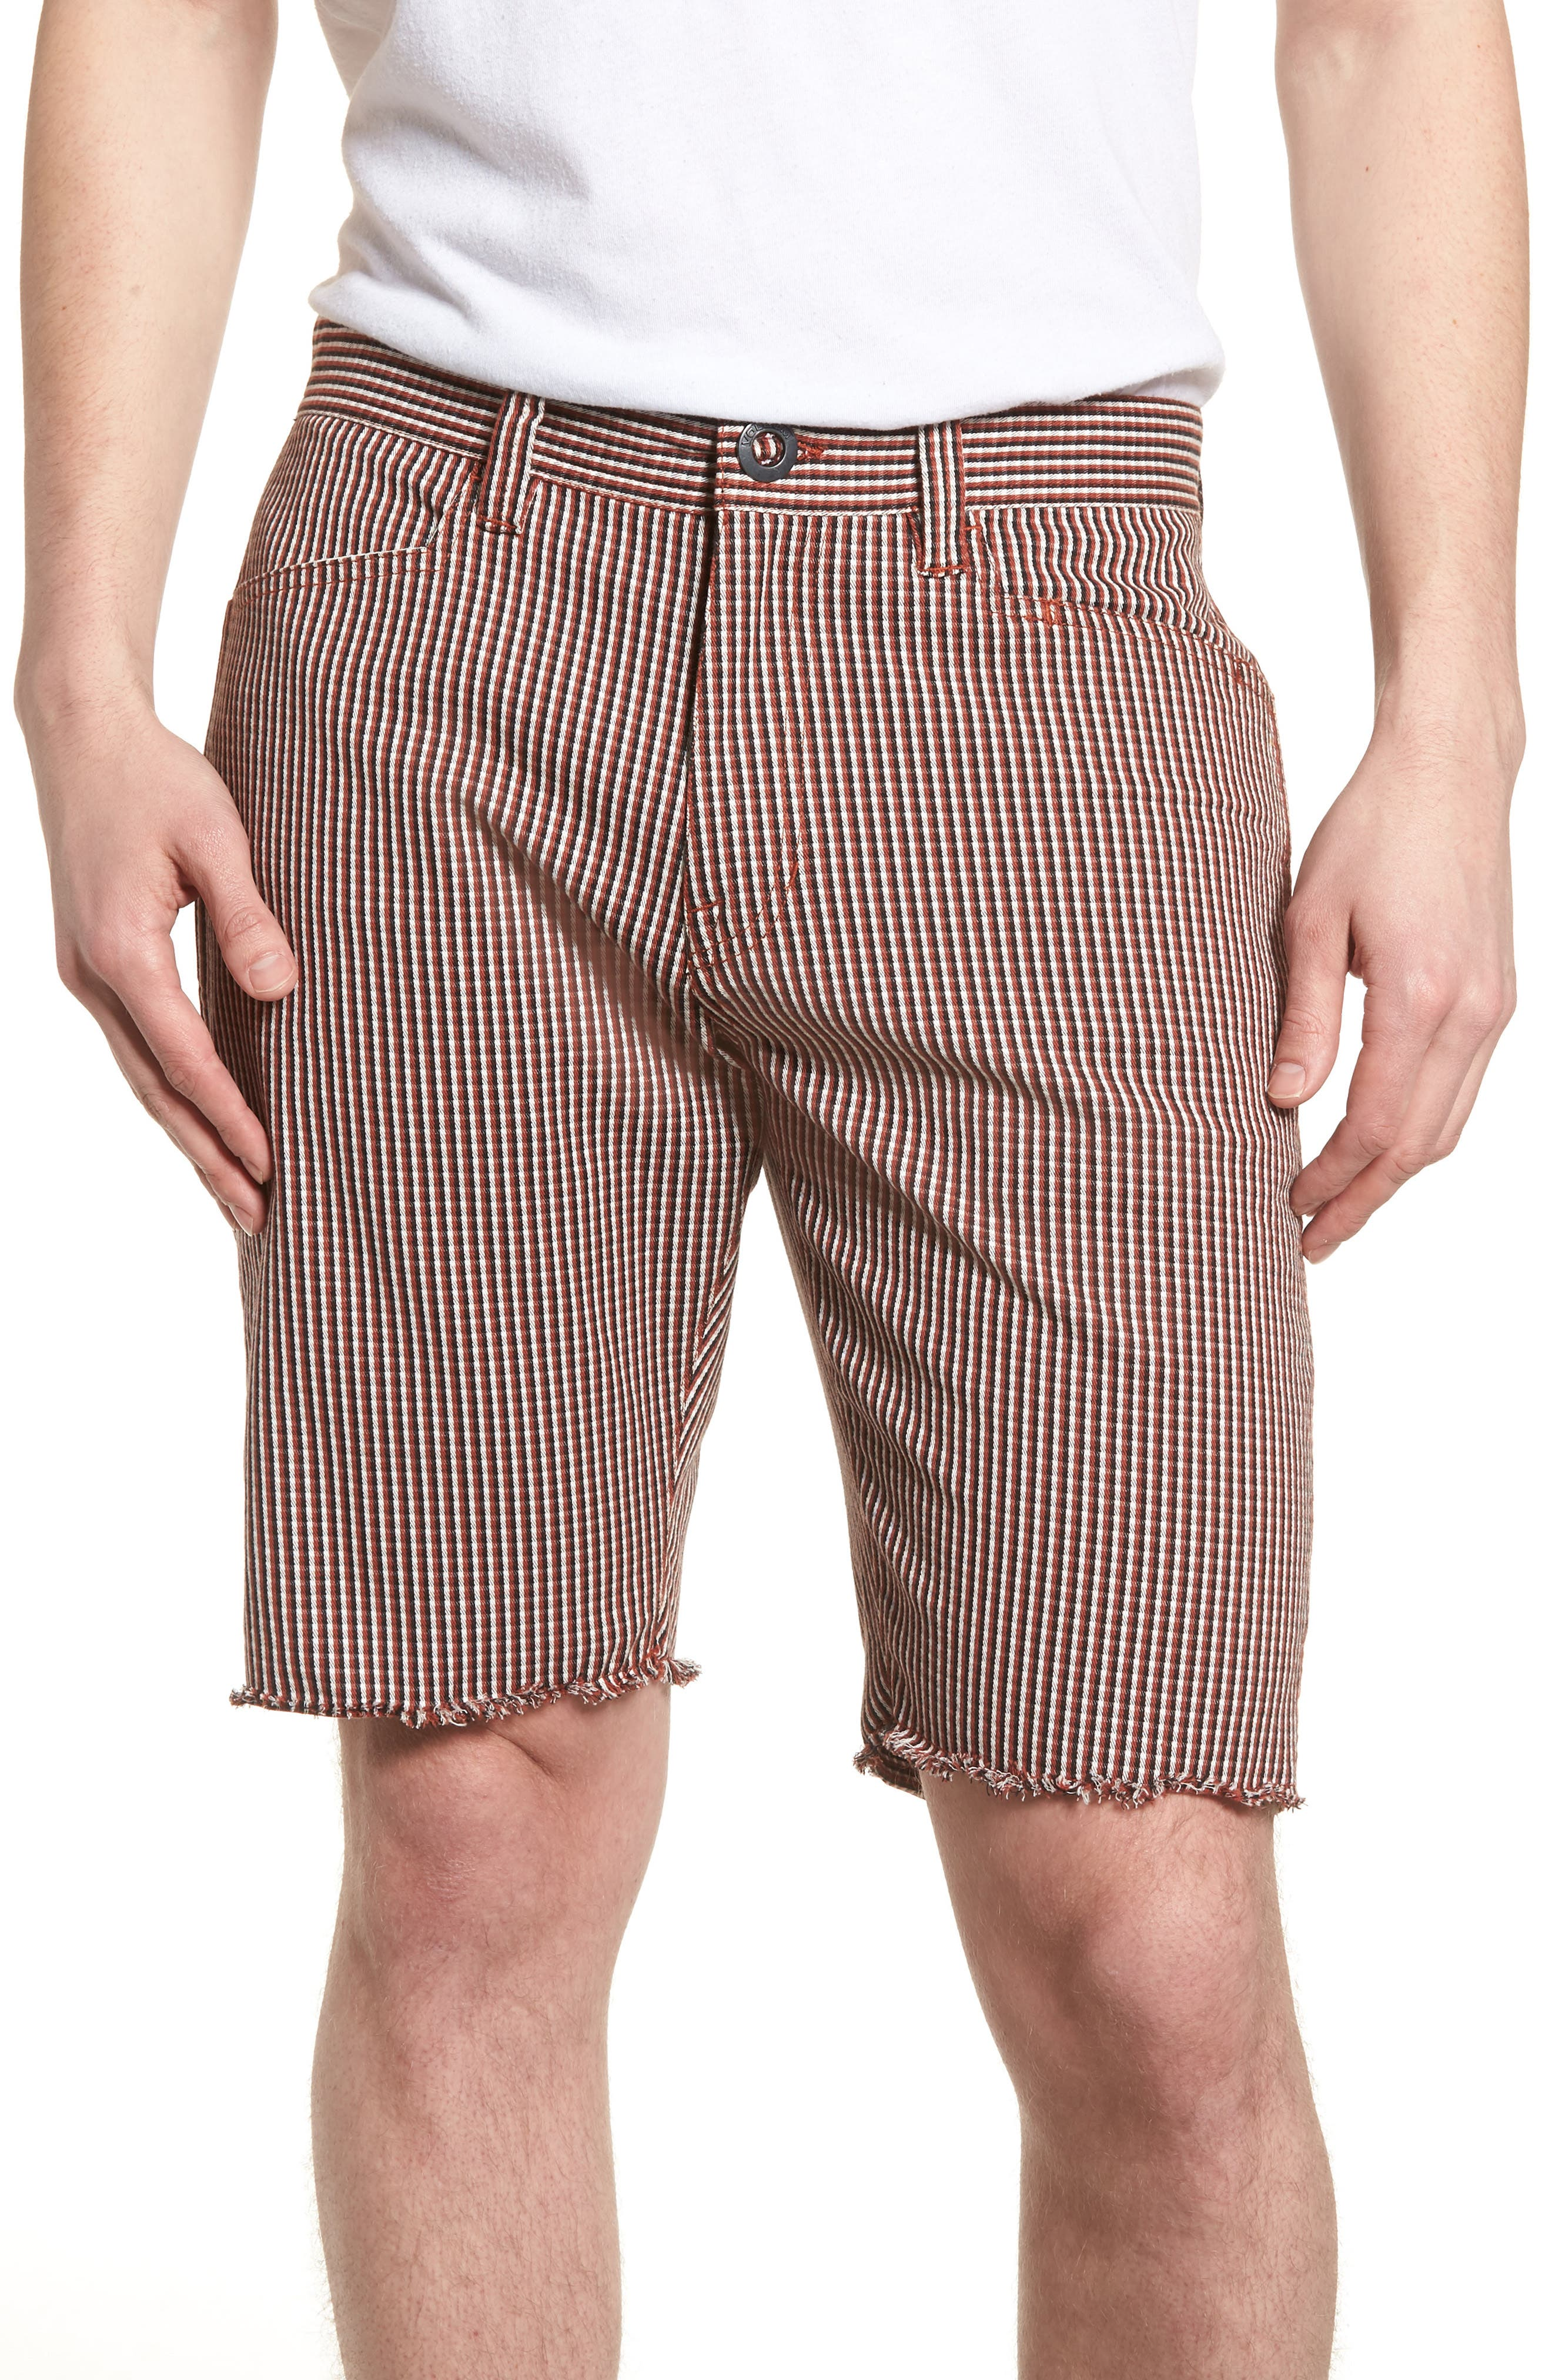 Gritter Thrifter Shorts,                         Main,                         color, Wild Ginger